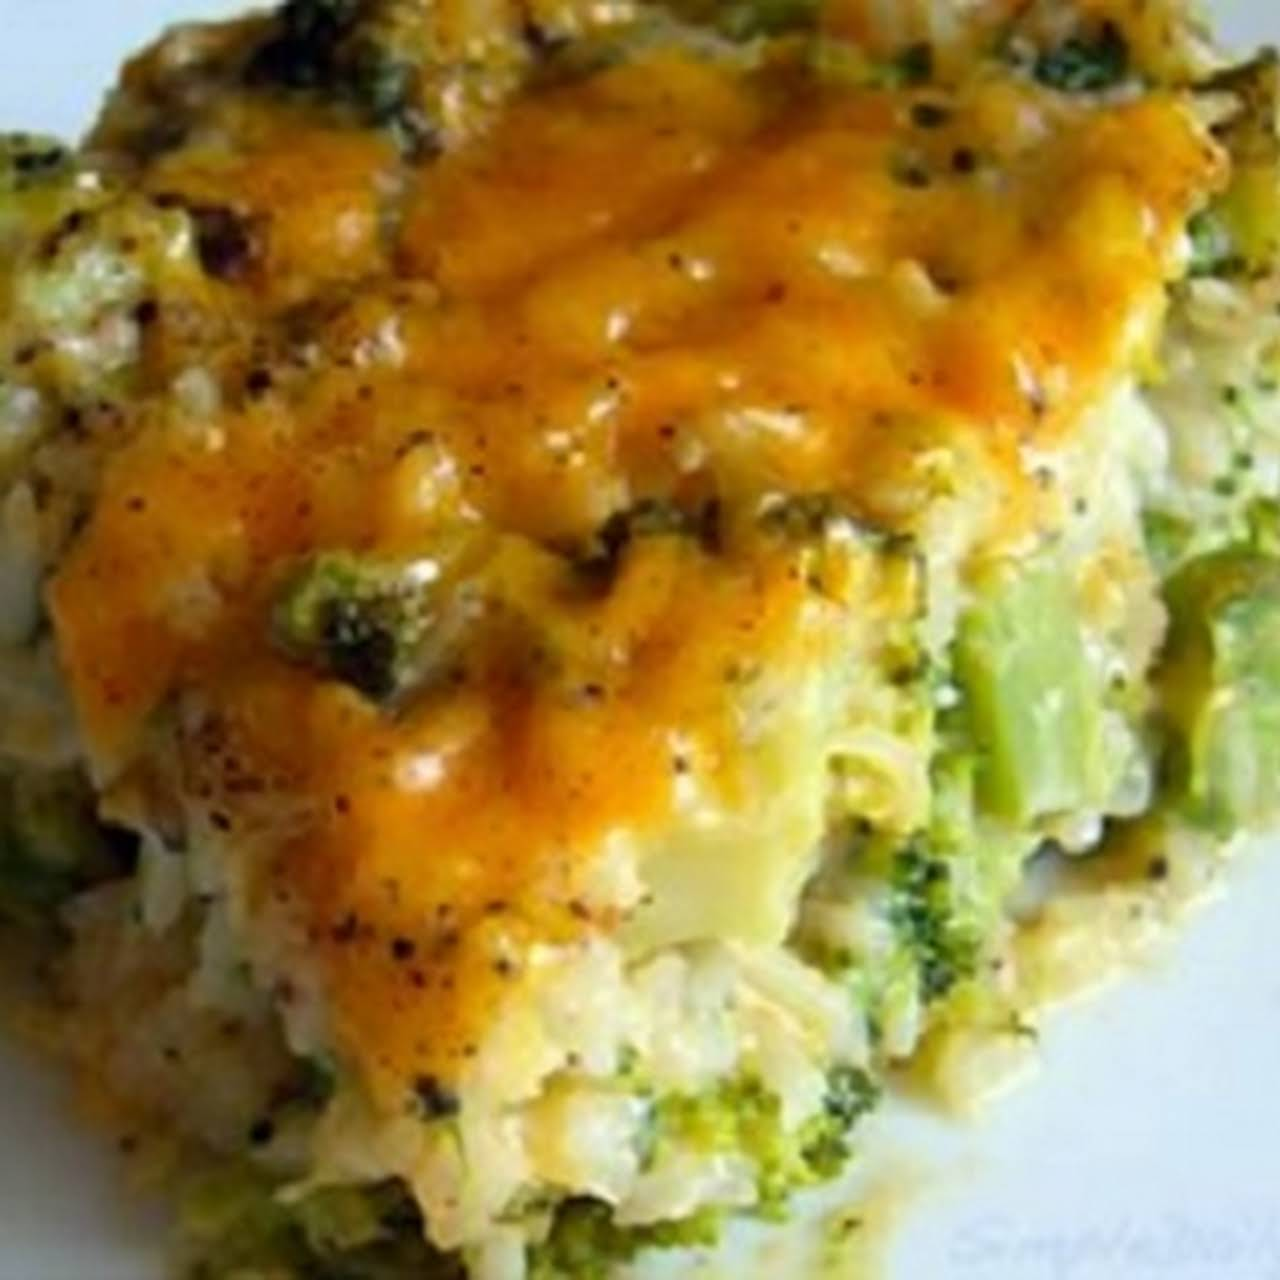 Have You Ever Made Cheesy Broccoli and Rice Casserole From Scratch?